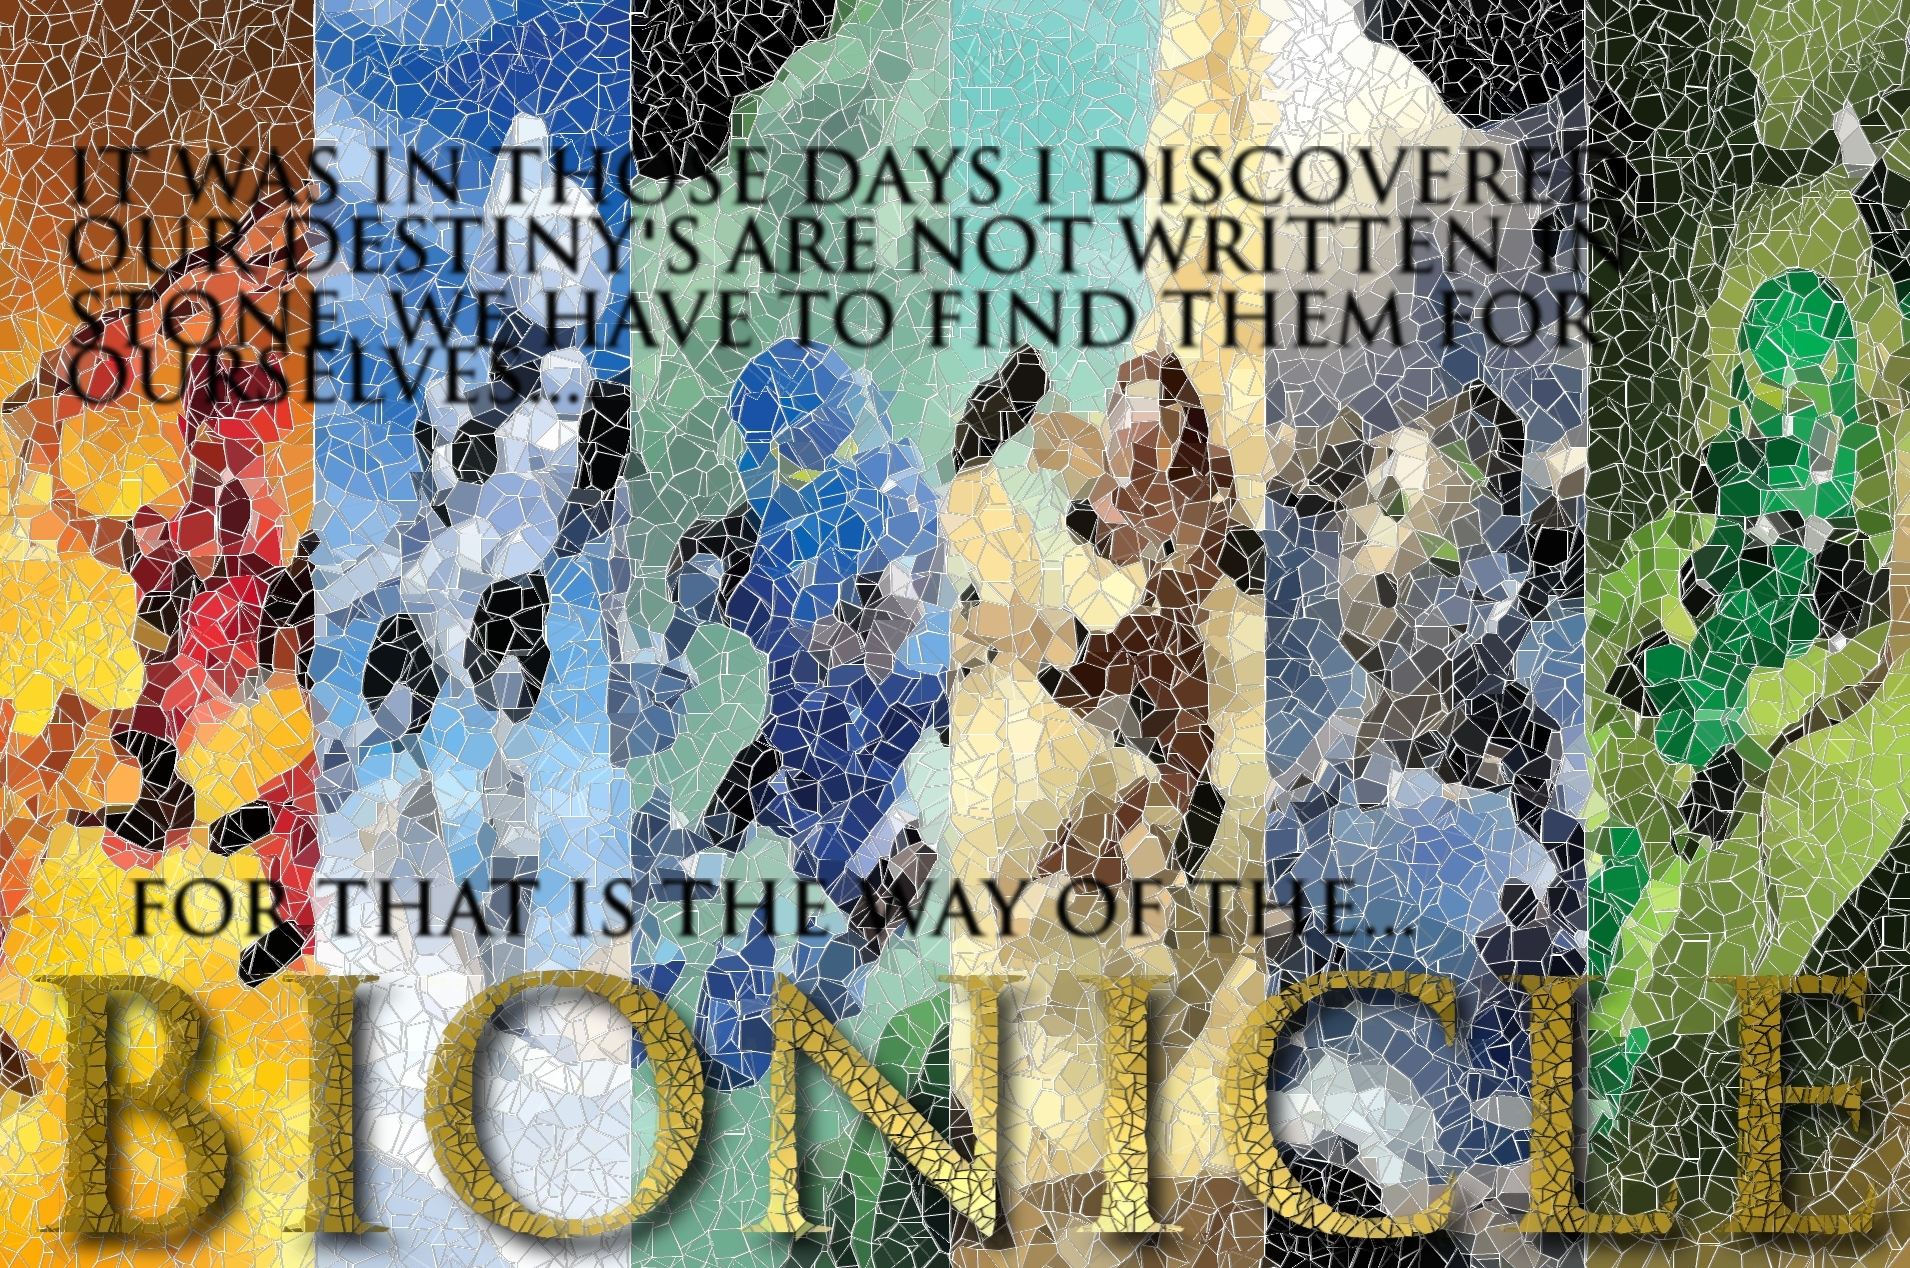 Bionicle Mosaic by airforce1129